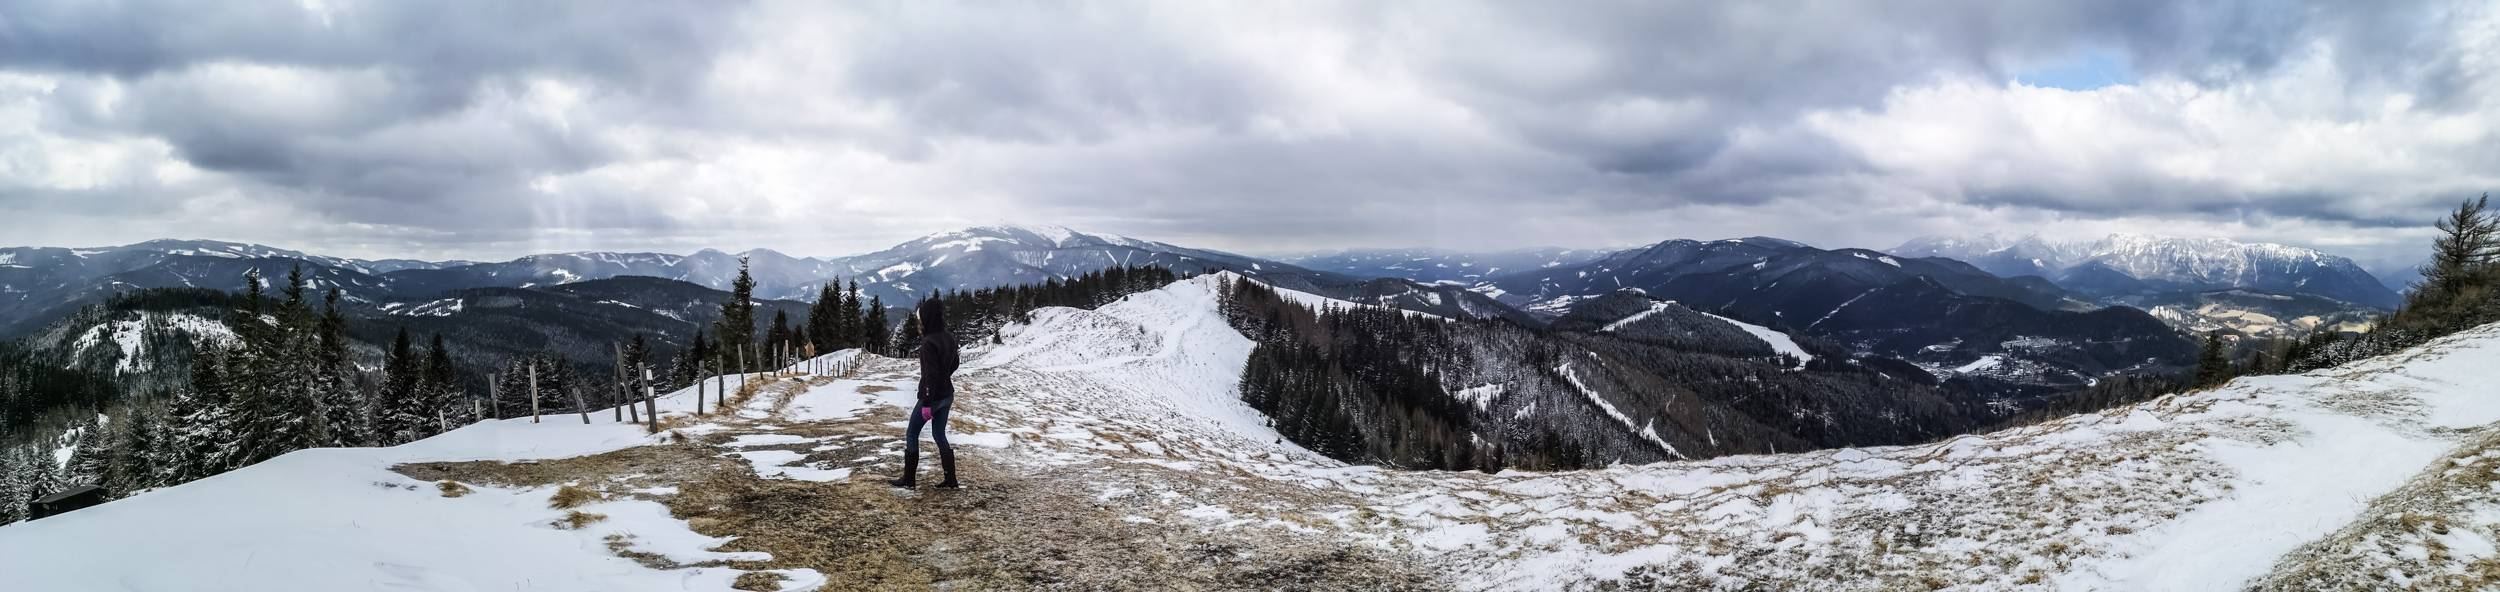 Panorama from in-between Sonnwendsteinn and Zauberberg Semmering. Photo by Alis Monte [CC BY-SA 4.0], via Connecting the Dots